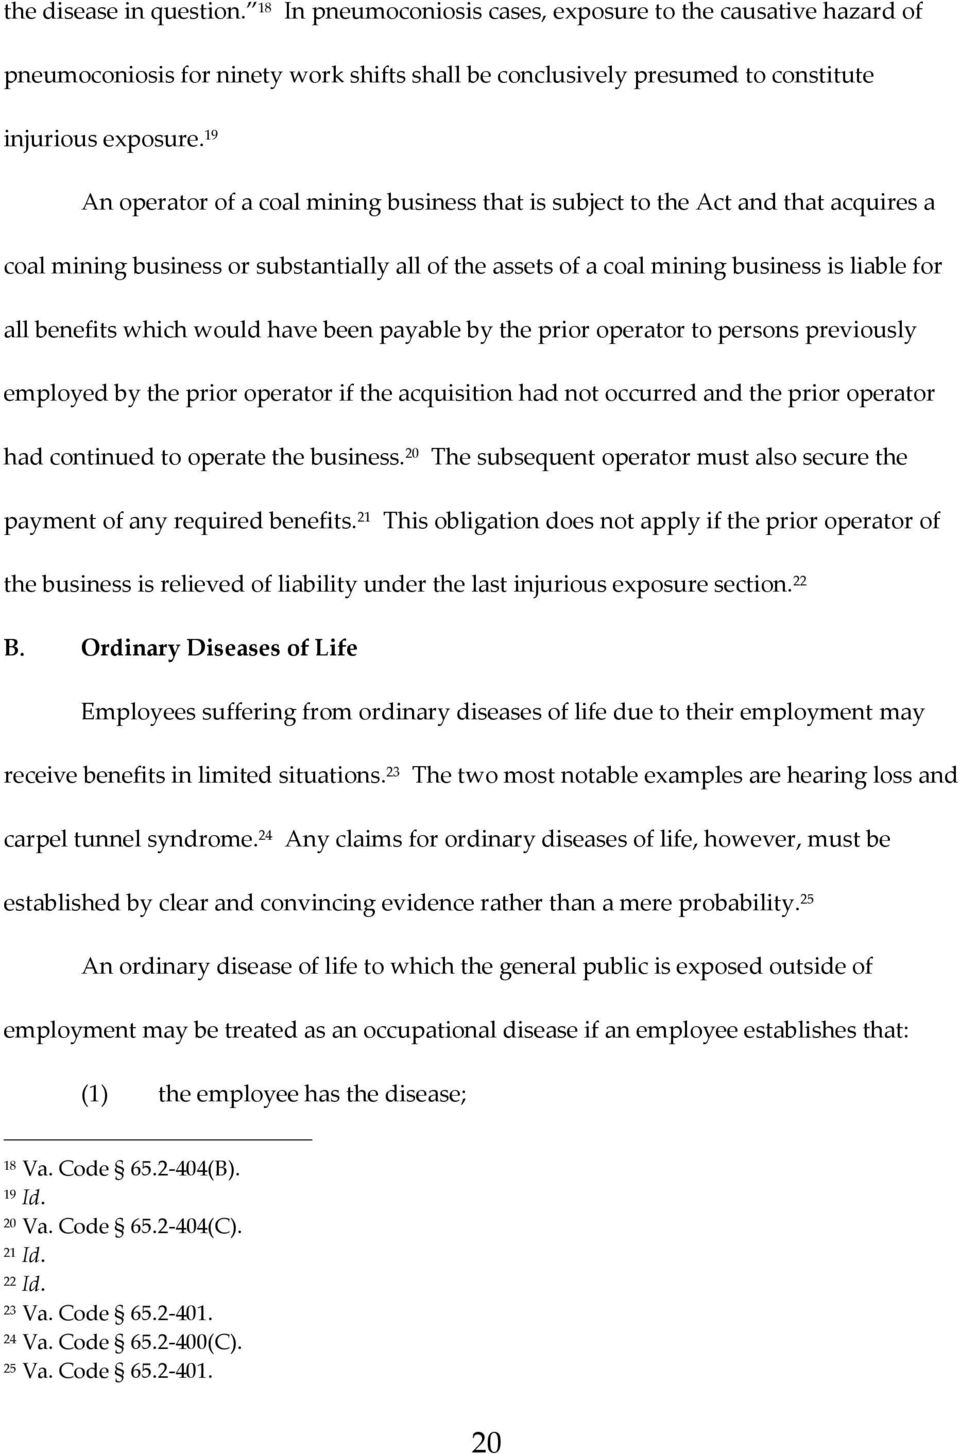 which would have been payable by the prior operator to persons previously employed by the prior operator if the acquisition had not occurred and the prior operator had continued to operate the